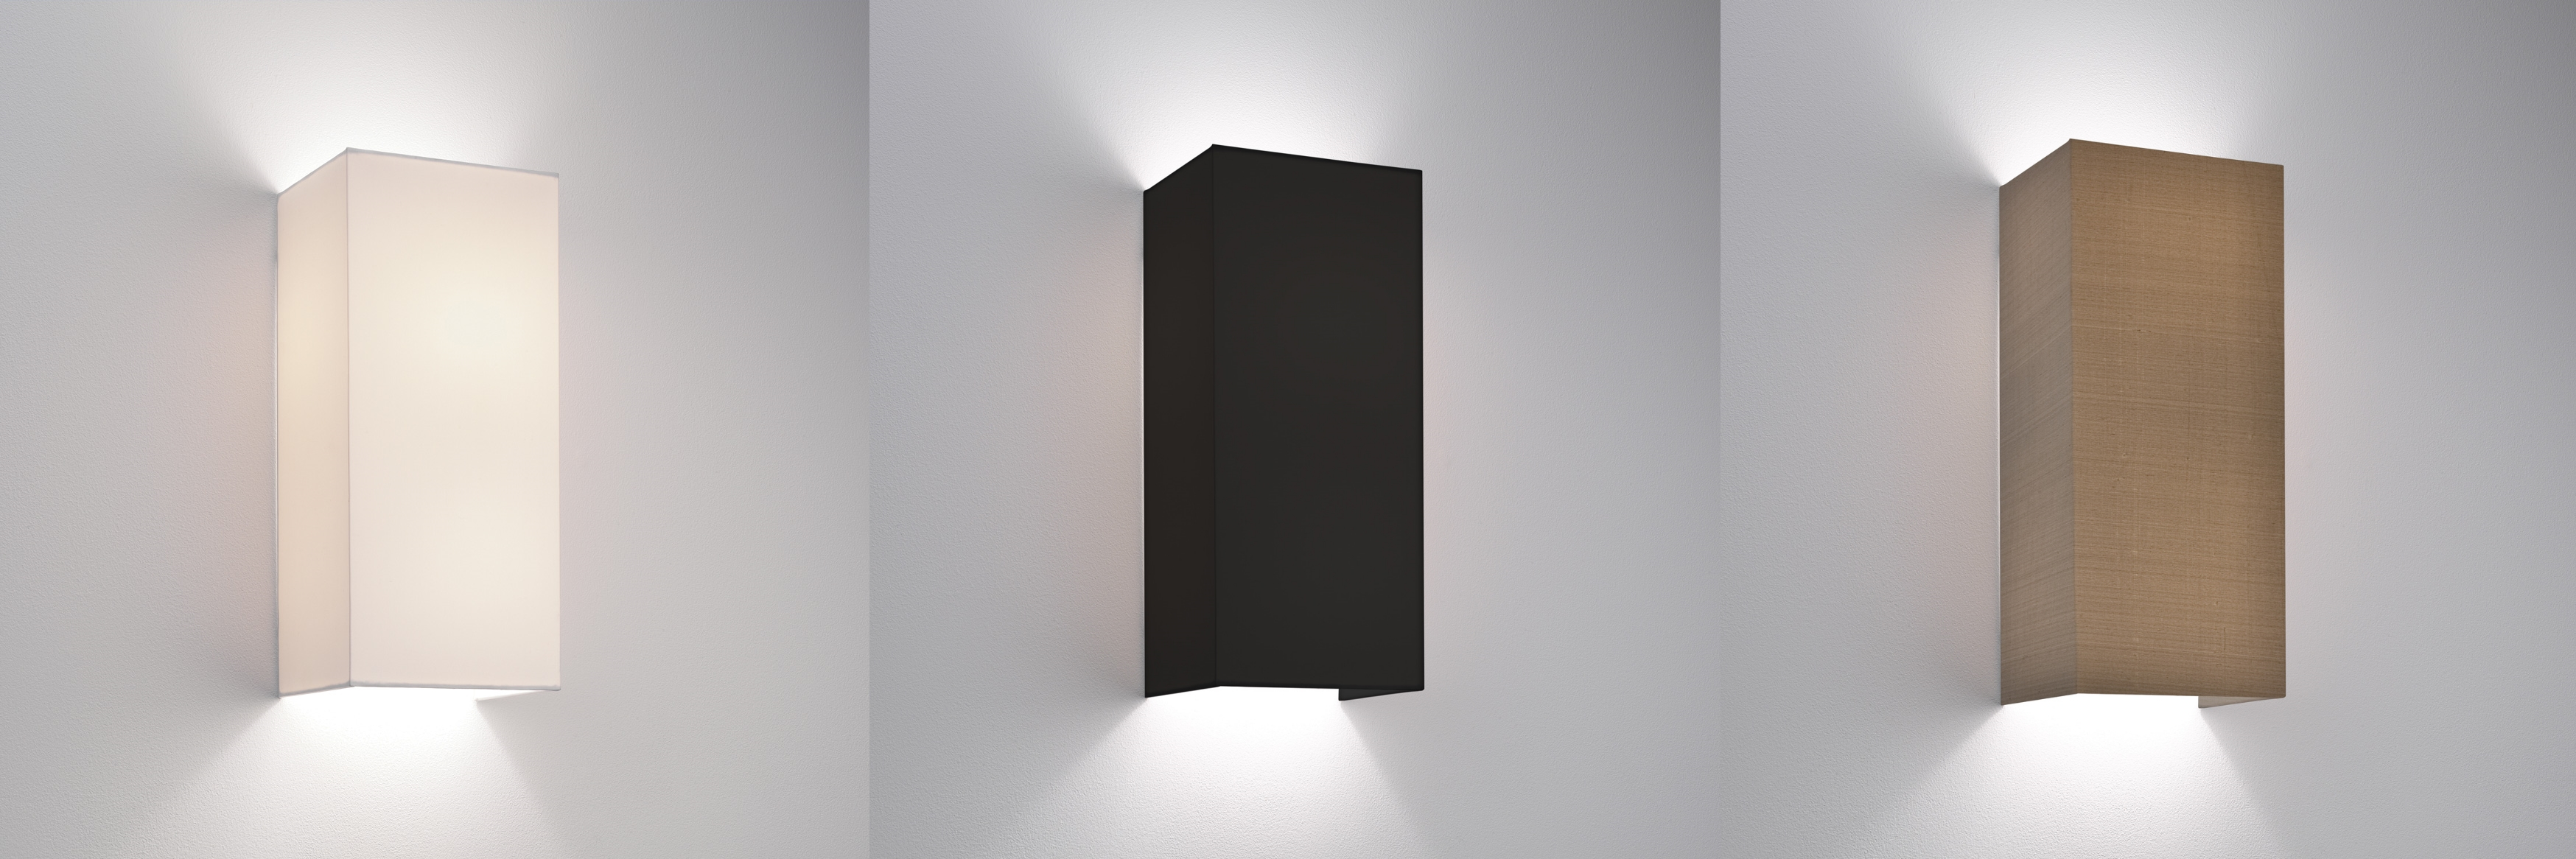 Wall Light Lamp Shades Fabric : Astro Chuo 380 fabric wall light shade 2x60W E27 white black oyster eBay